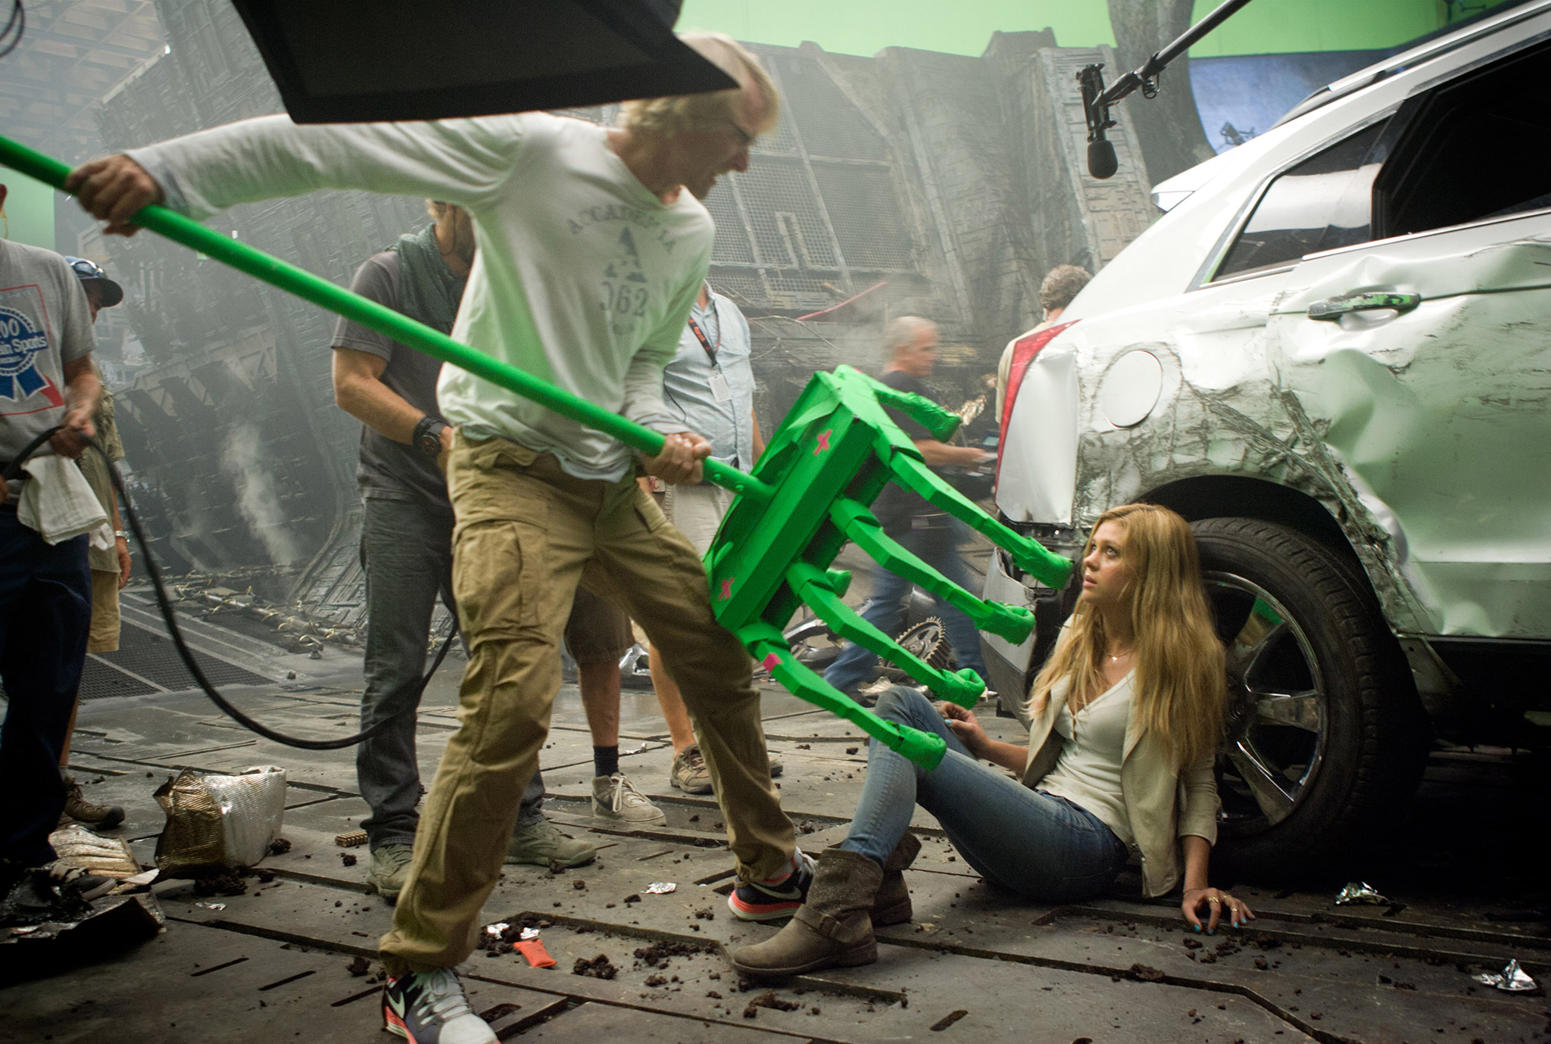 Transformers: Age of Extinction - Movie Stills